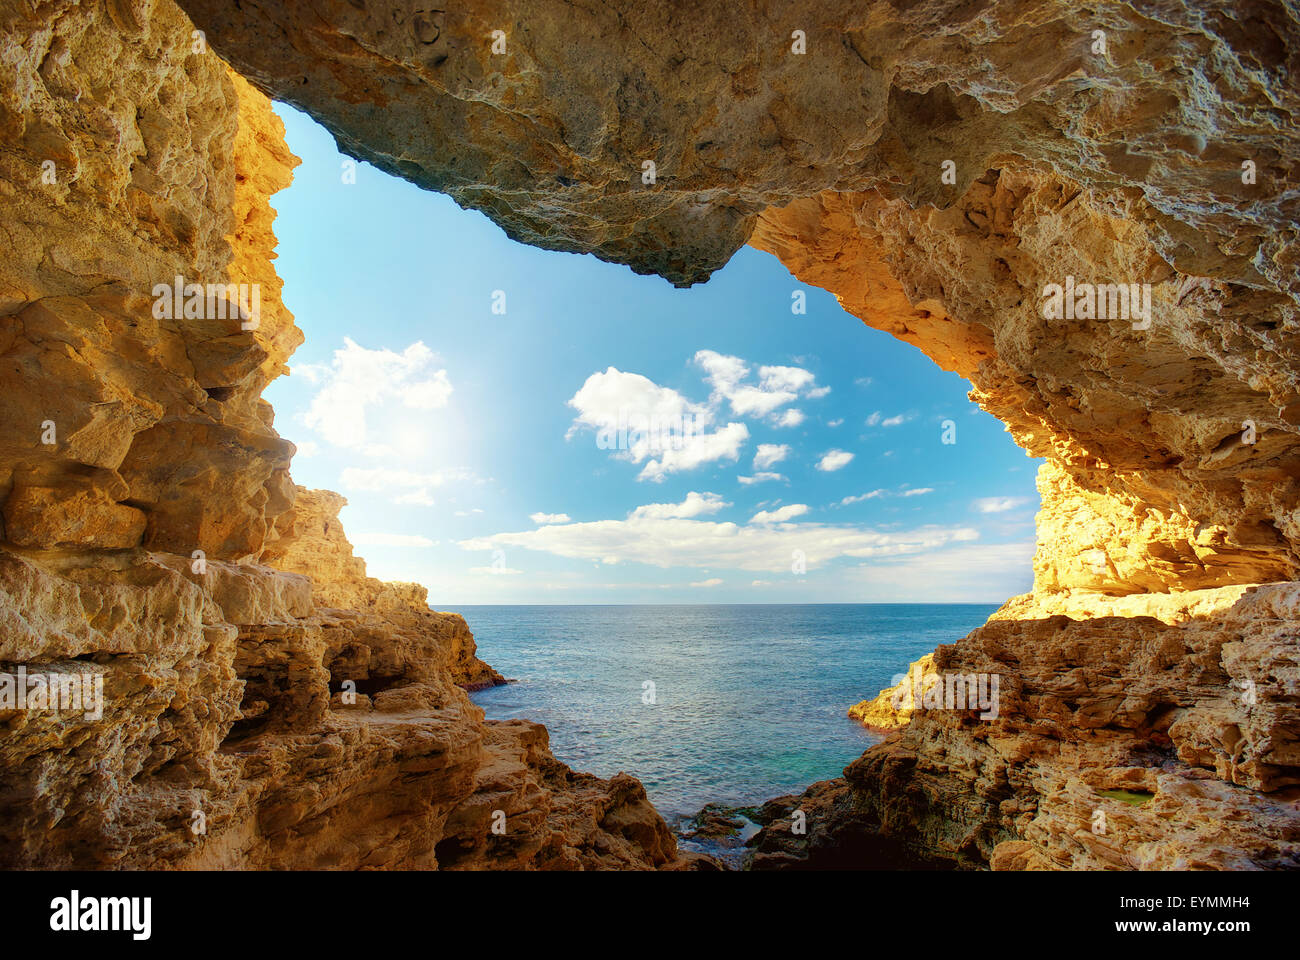 Inside of mainsail. Nature composition. - Stock Image